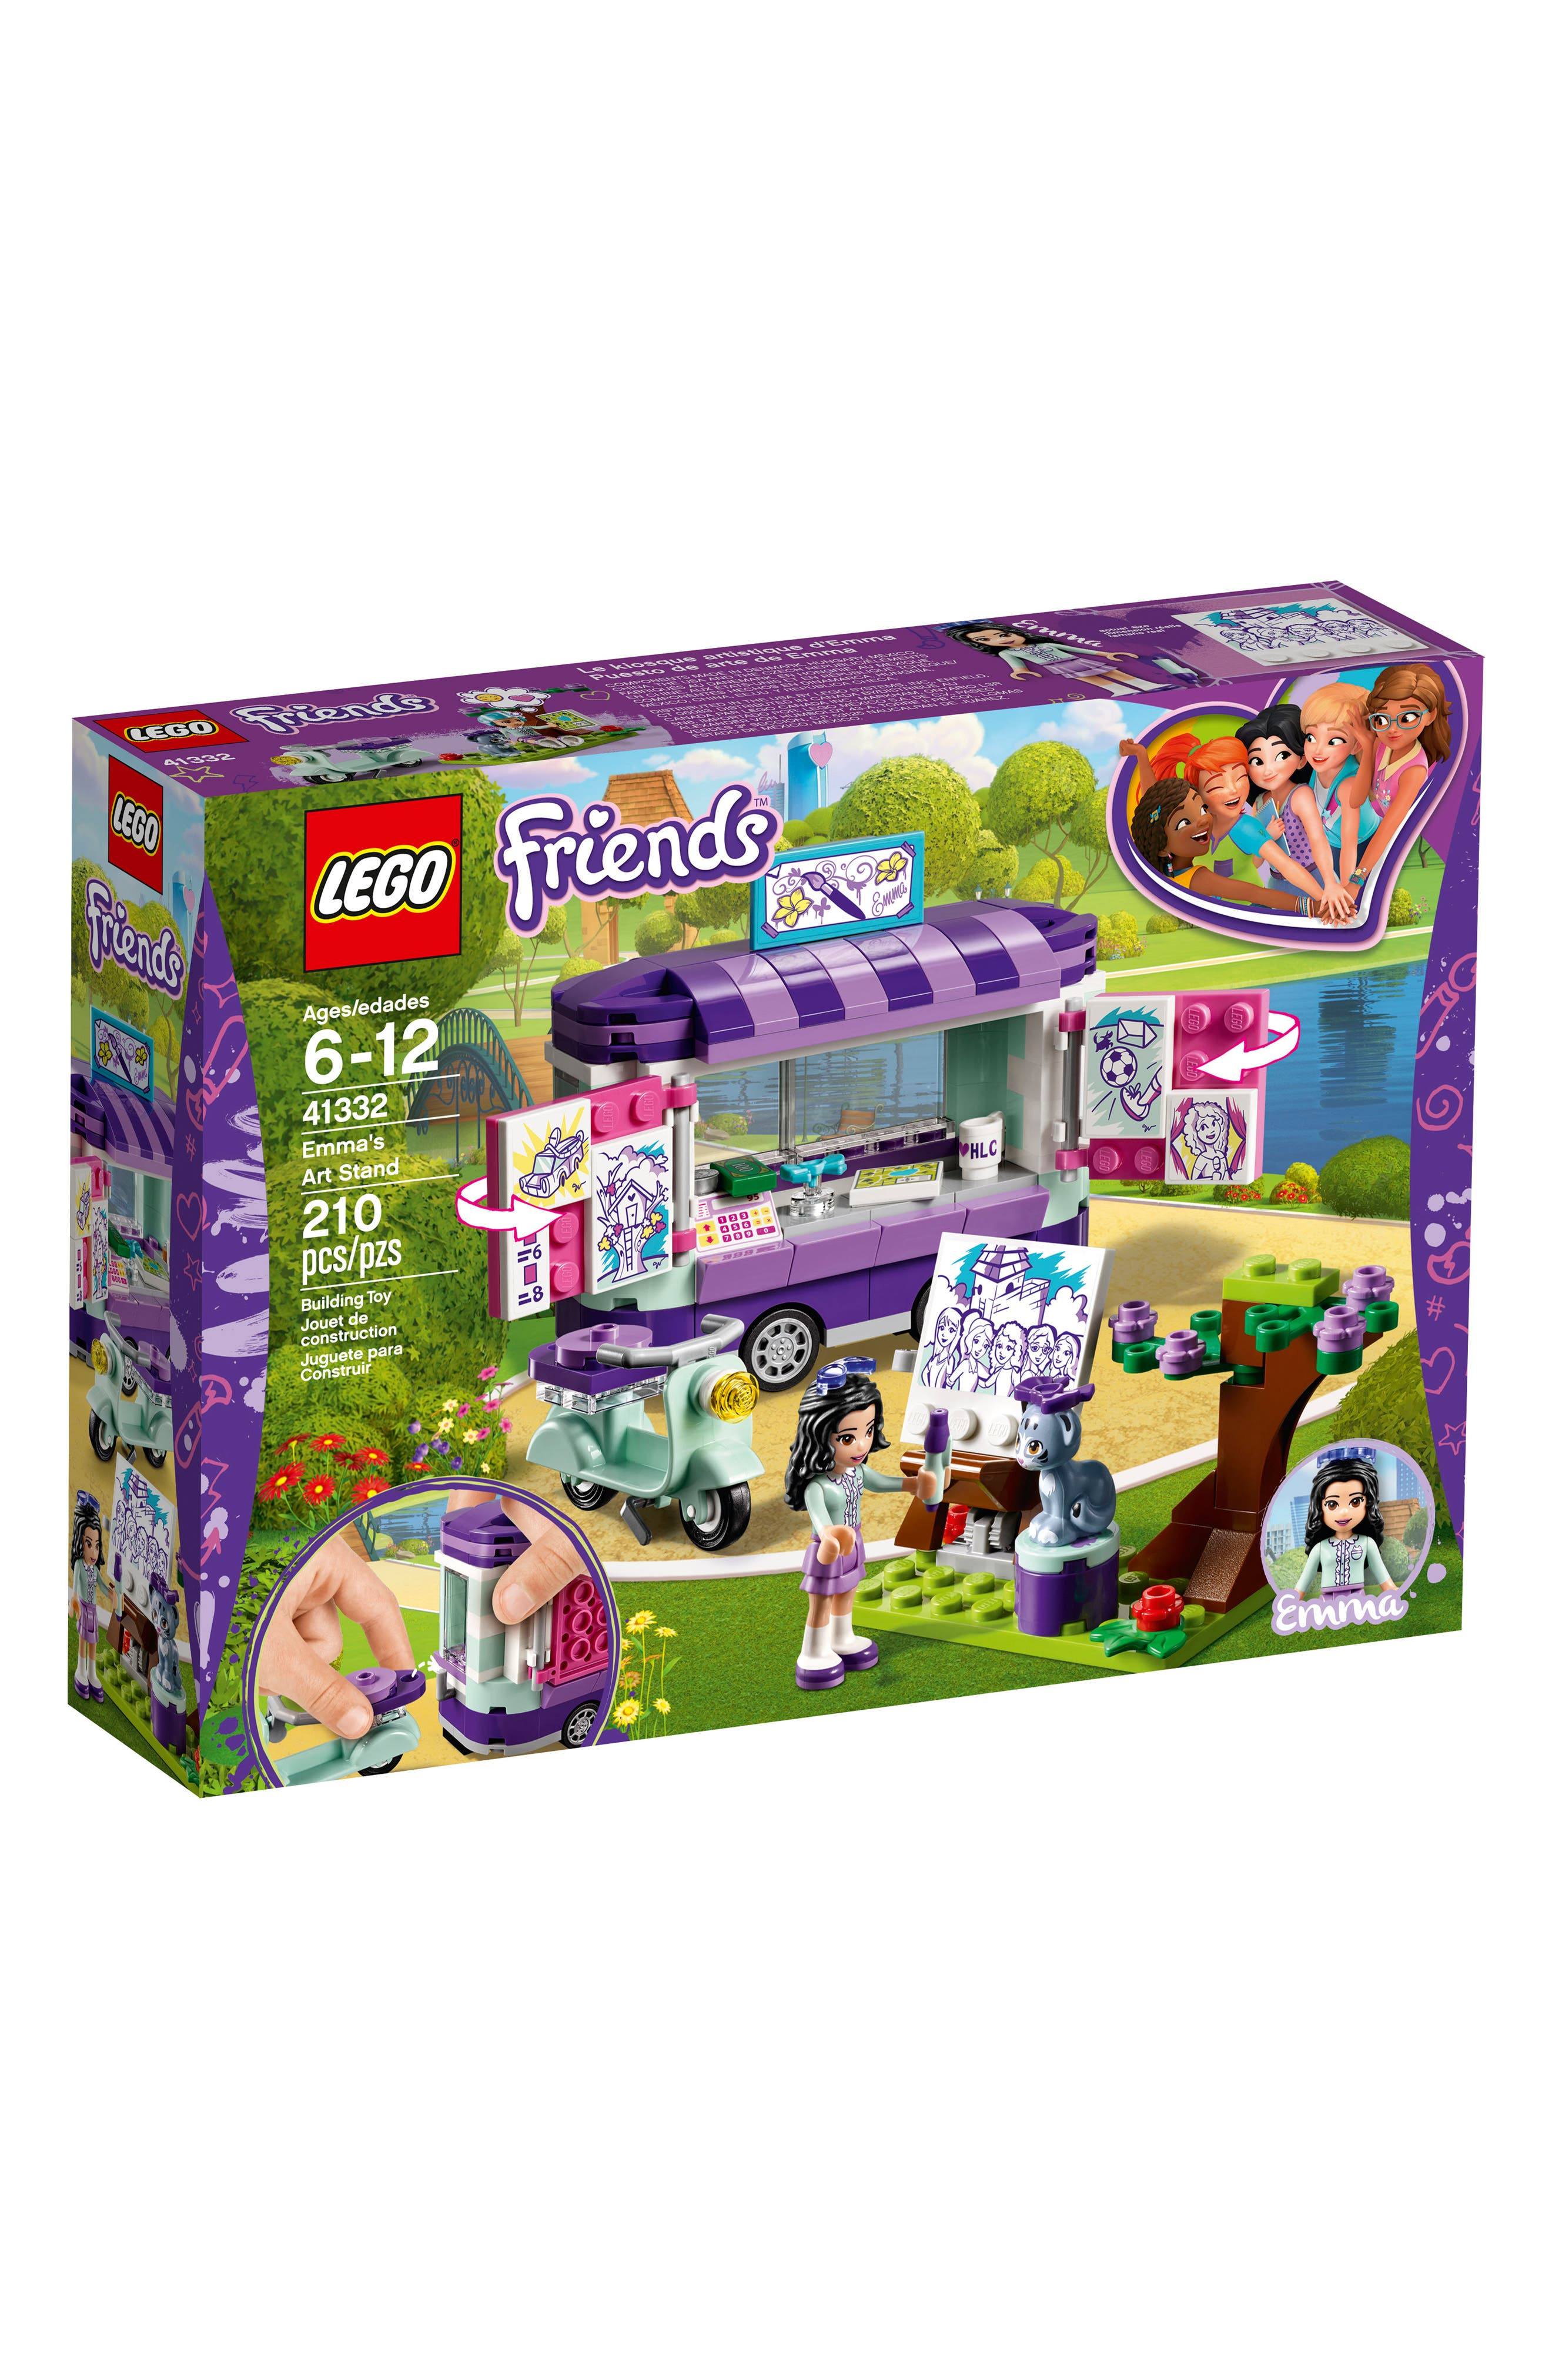 LEGO Friends Emma's Art Stand Play Set - 41332,                         Main,                         color, Multi